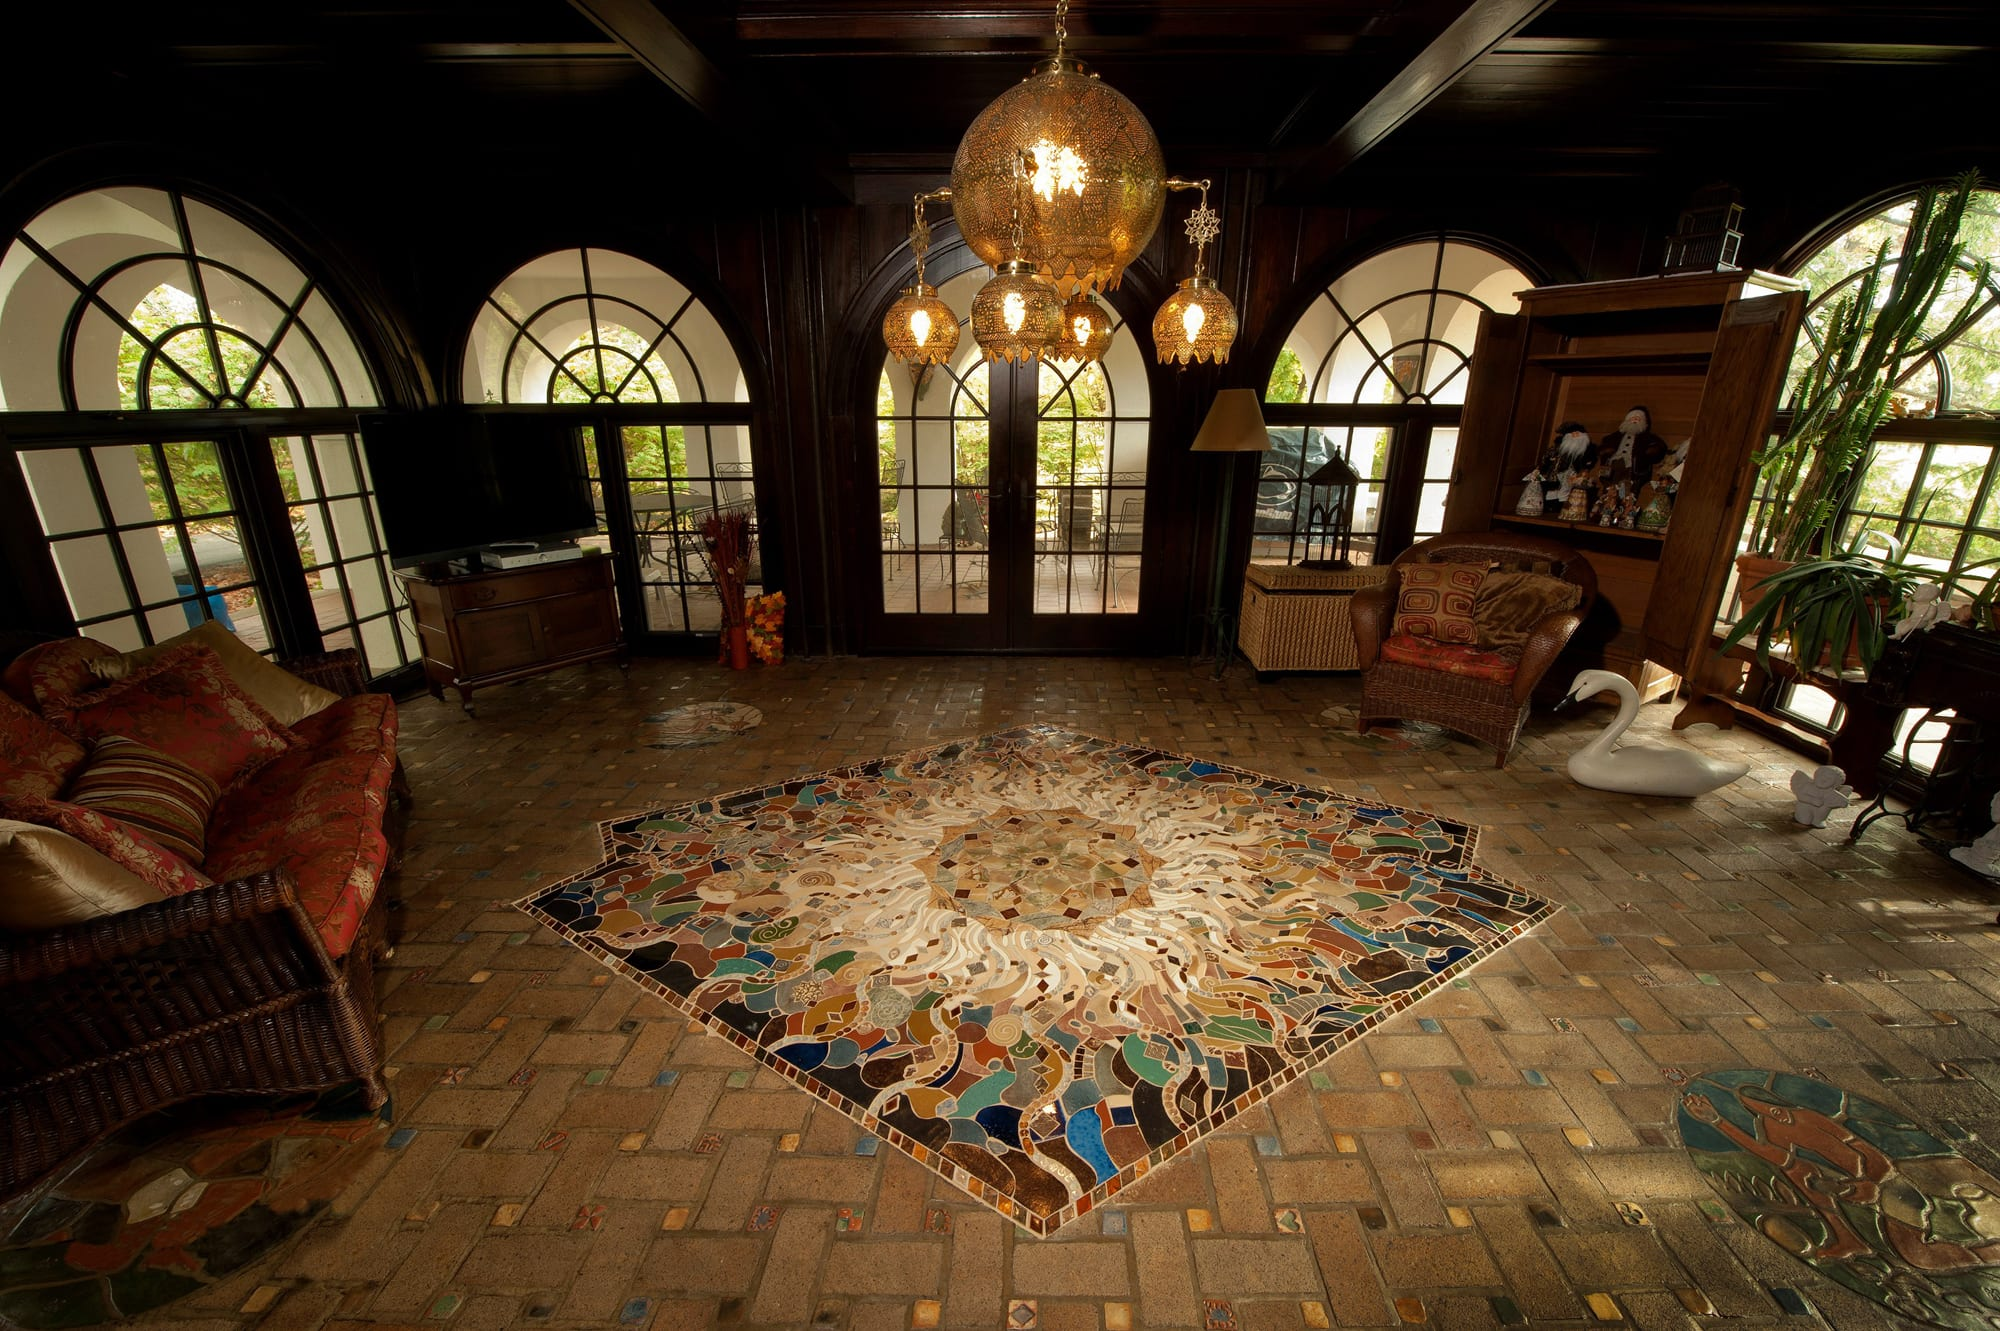 """Mosaic Floor"" by Nathan Breininger"